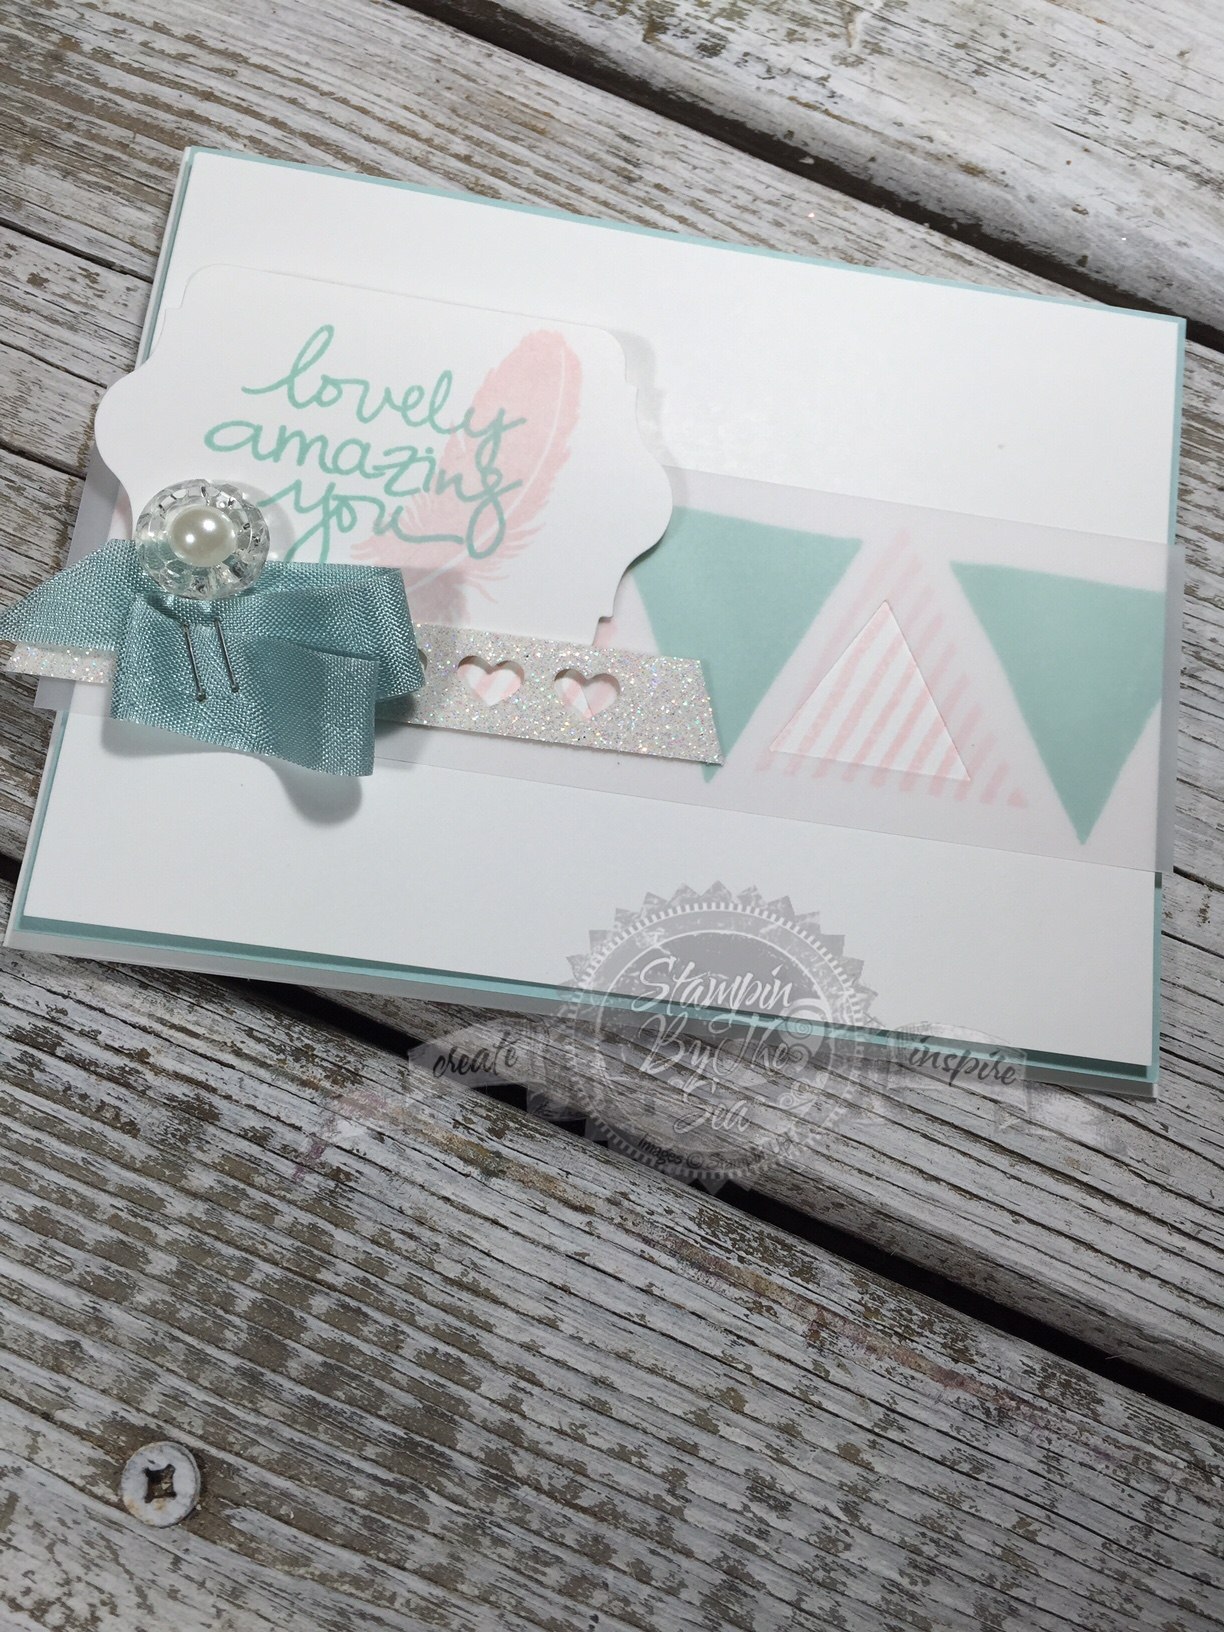 Lovely Amazing You, Stampin' Up!